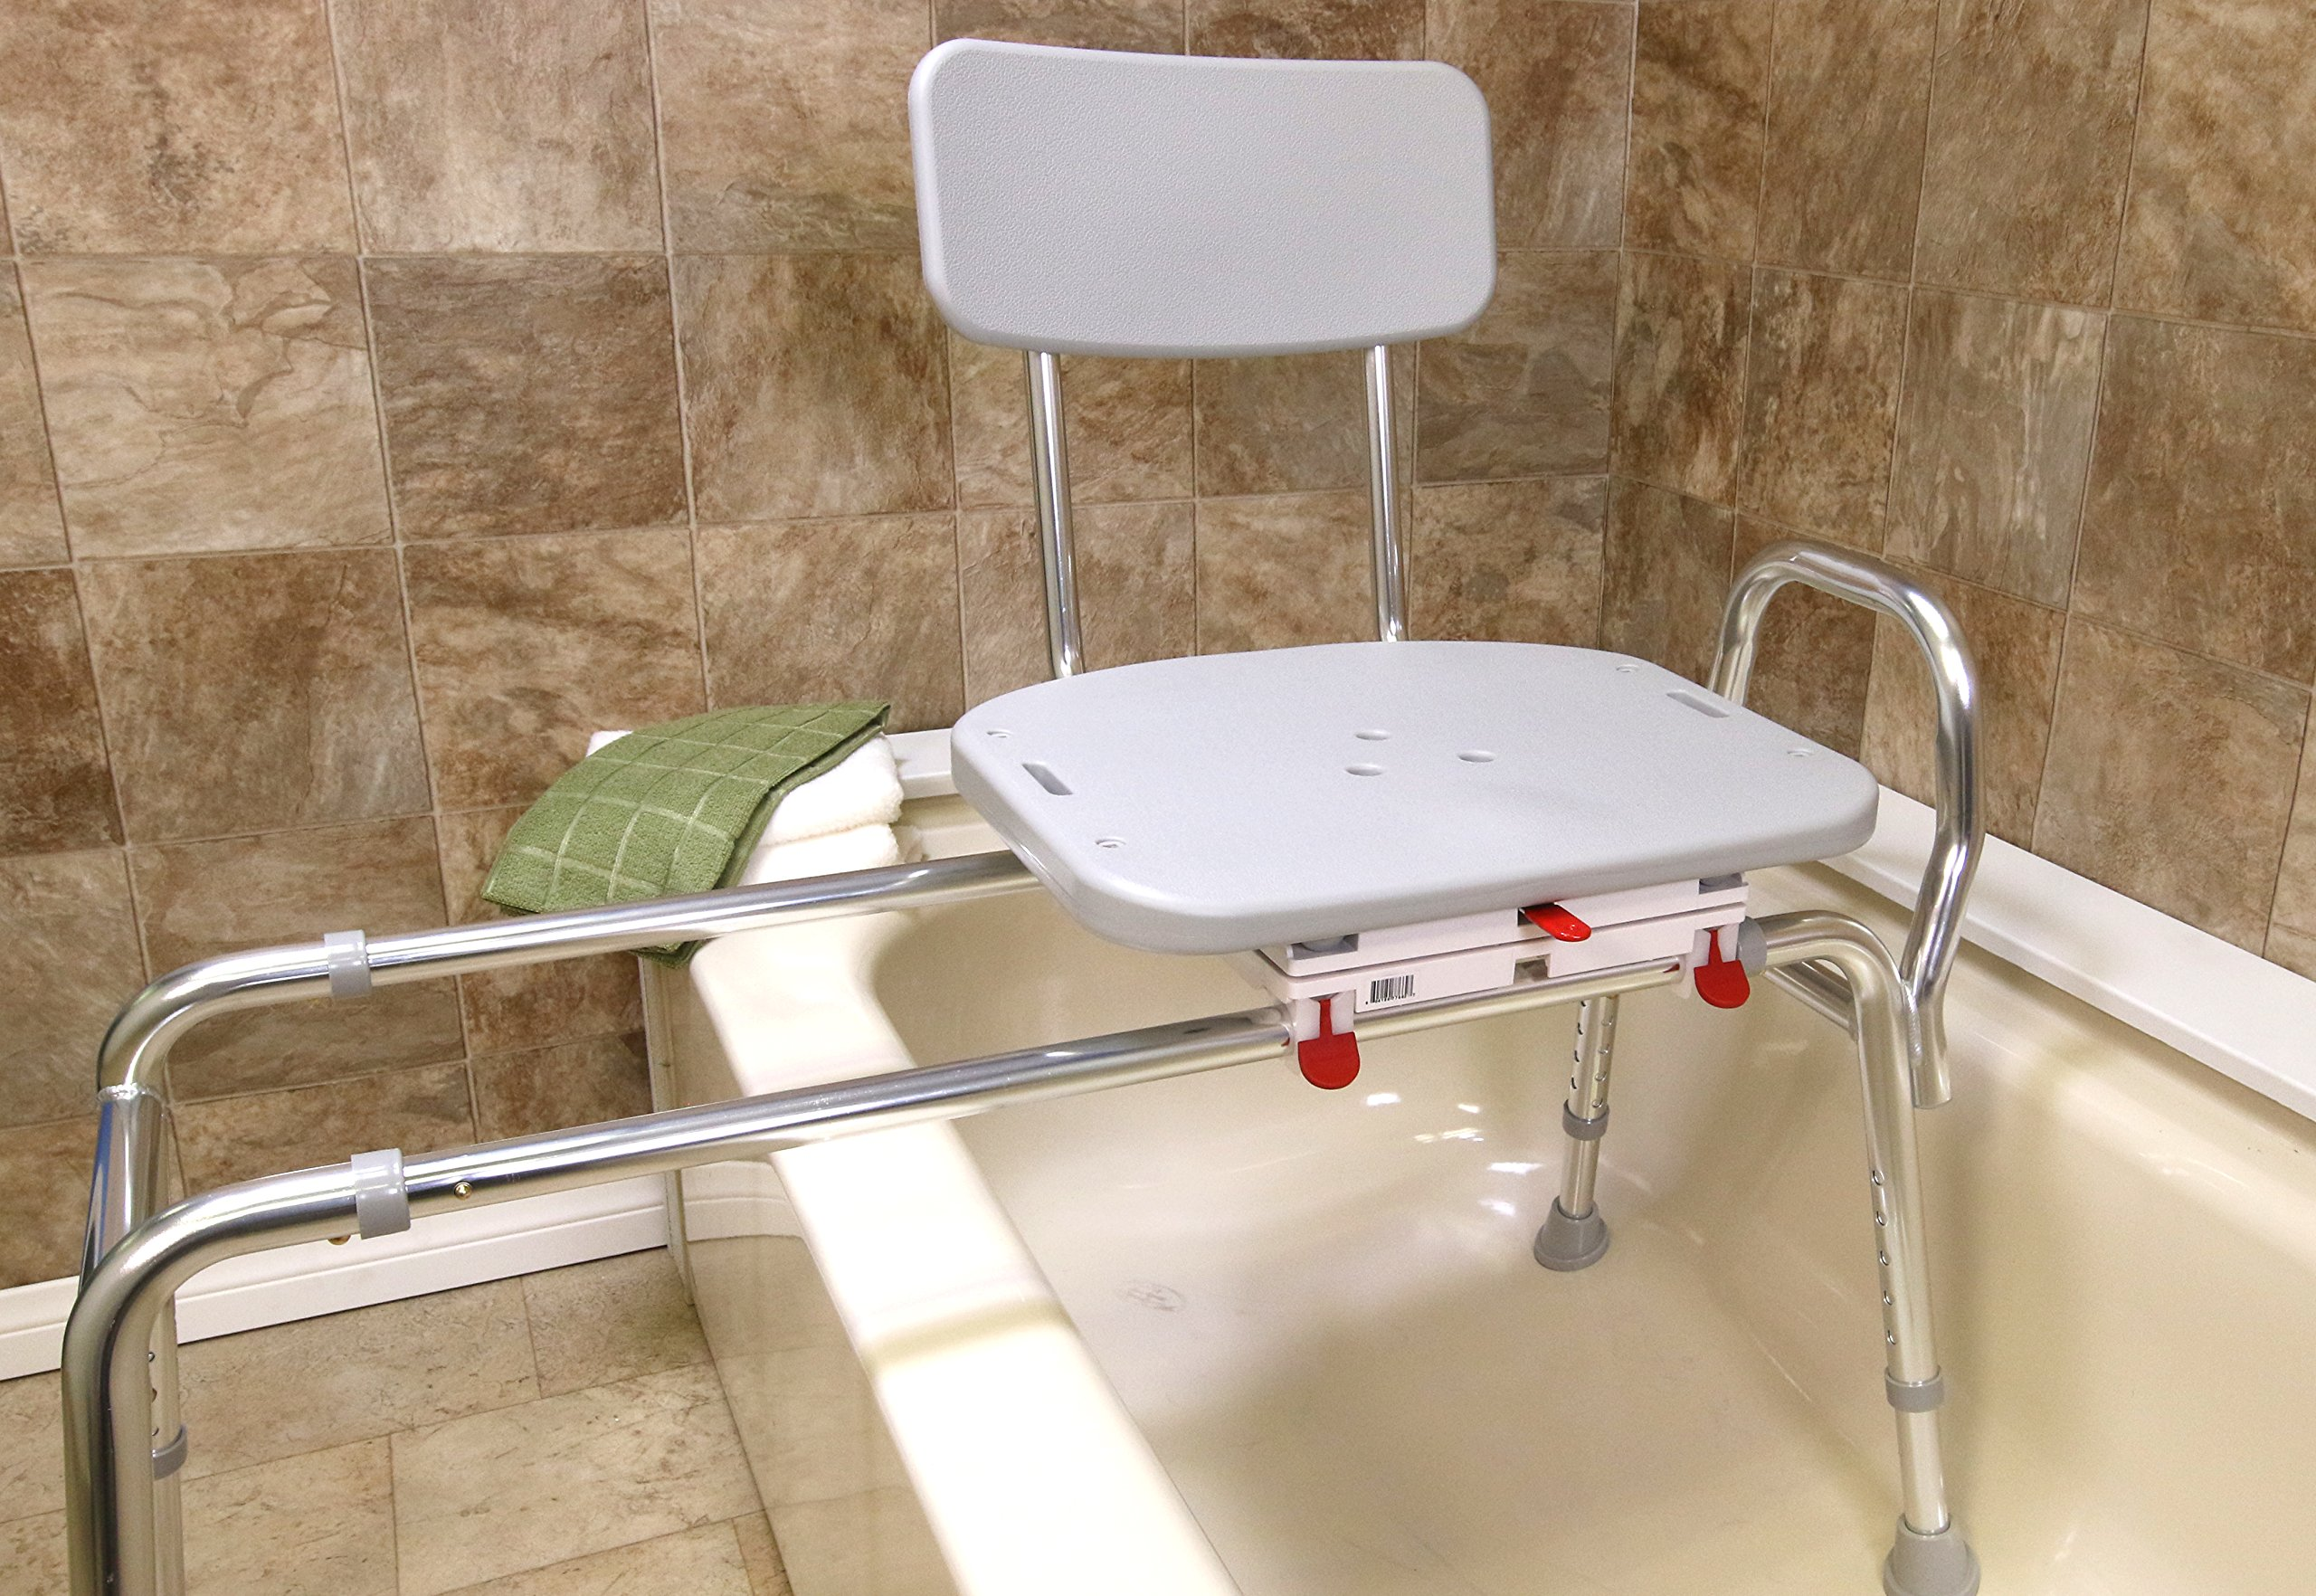 Swivel Sliding Bath Transfer Bench (77682) - Long (Base Length: 43'' - 44'') - Heavy-Duty Shower Bathtub Chair - Eagle Health Supplies by Eagle Health Supplies (Image #3)